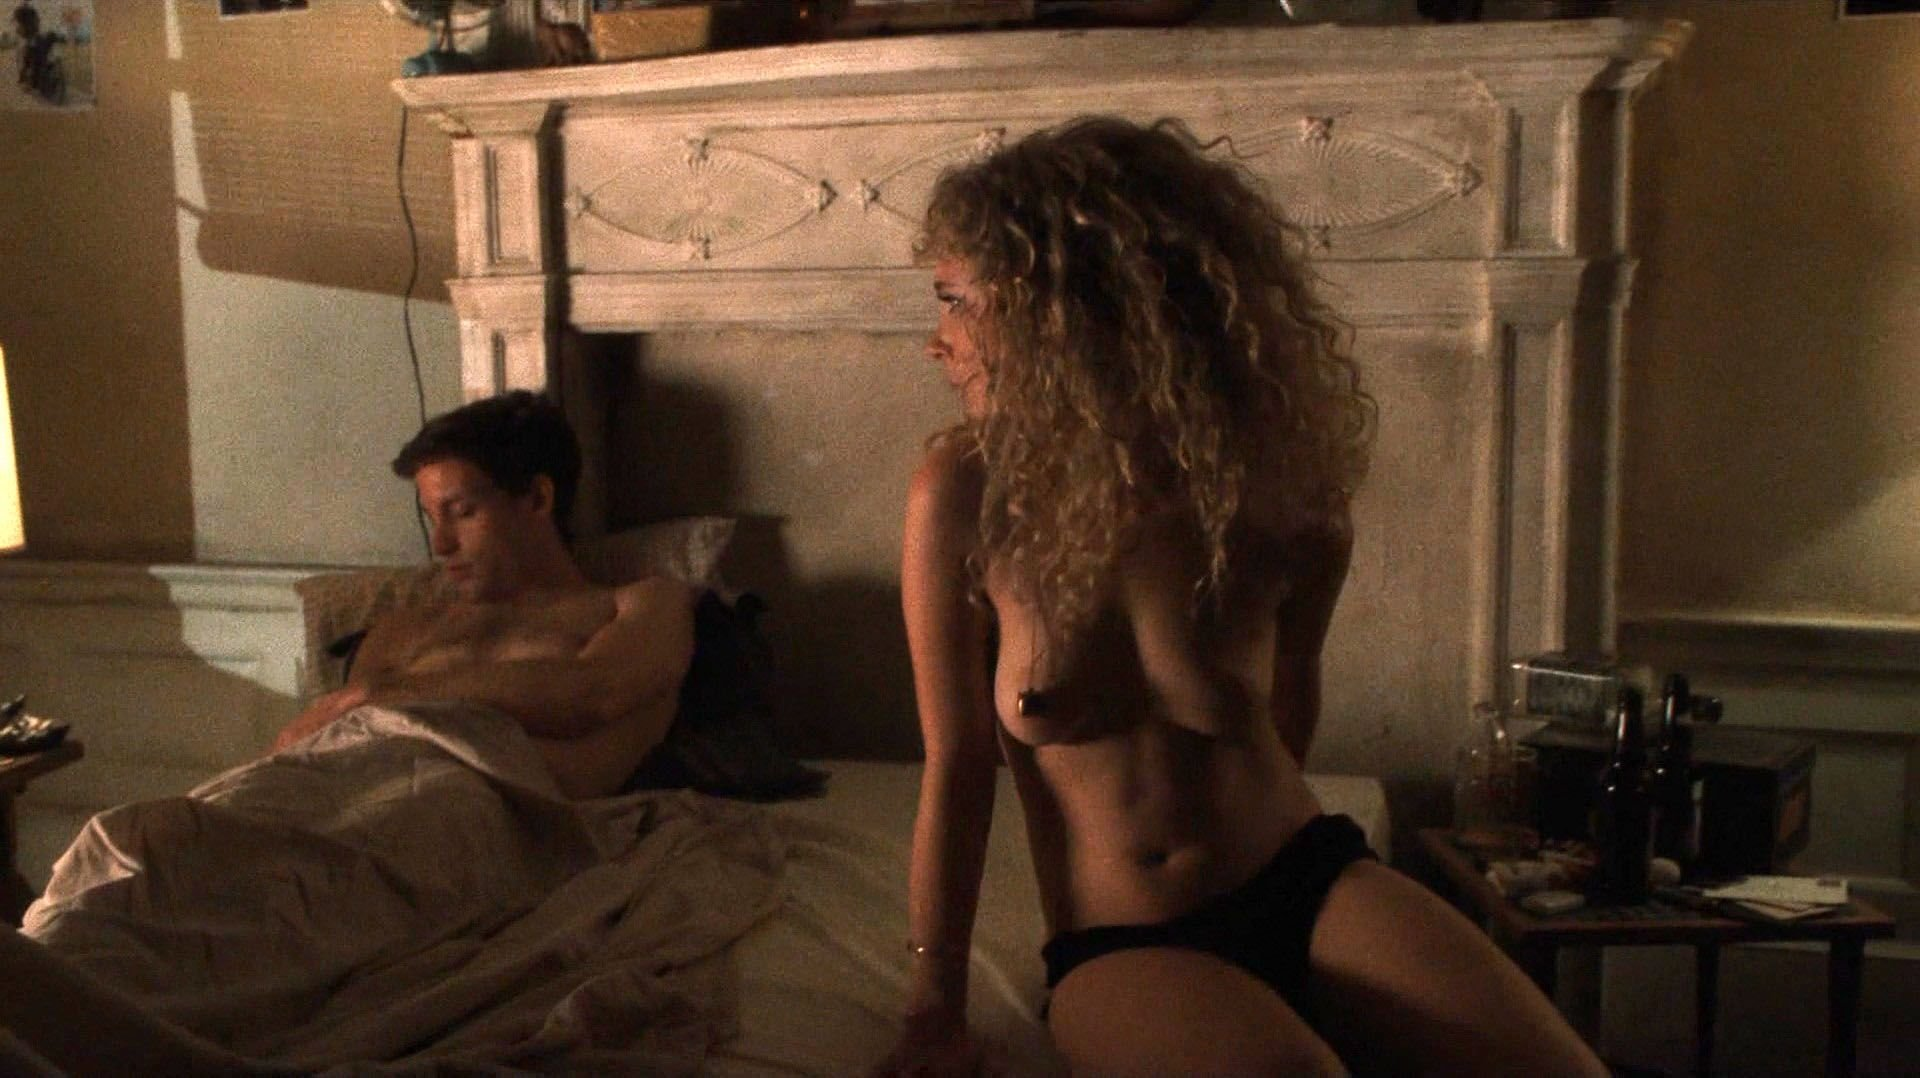 Juno temple nude sex scene in kaboom scandalplanetcom